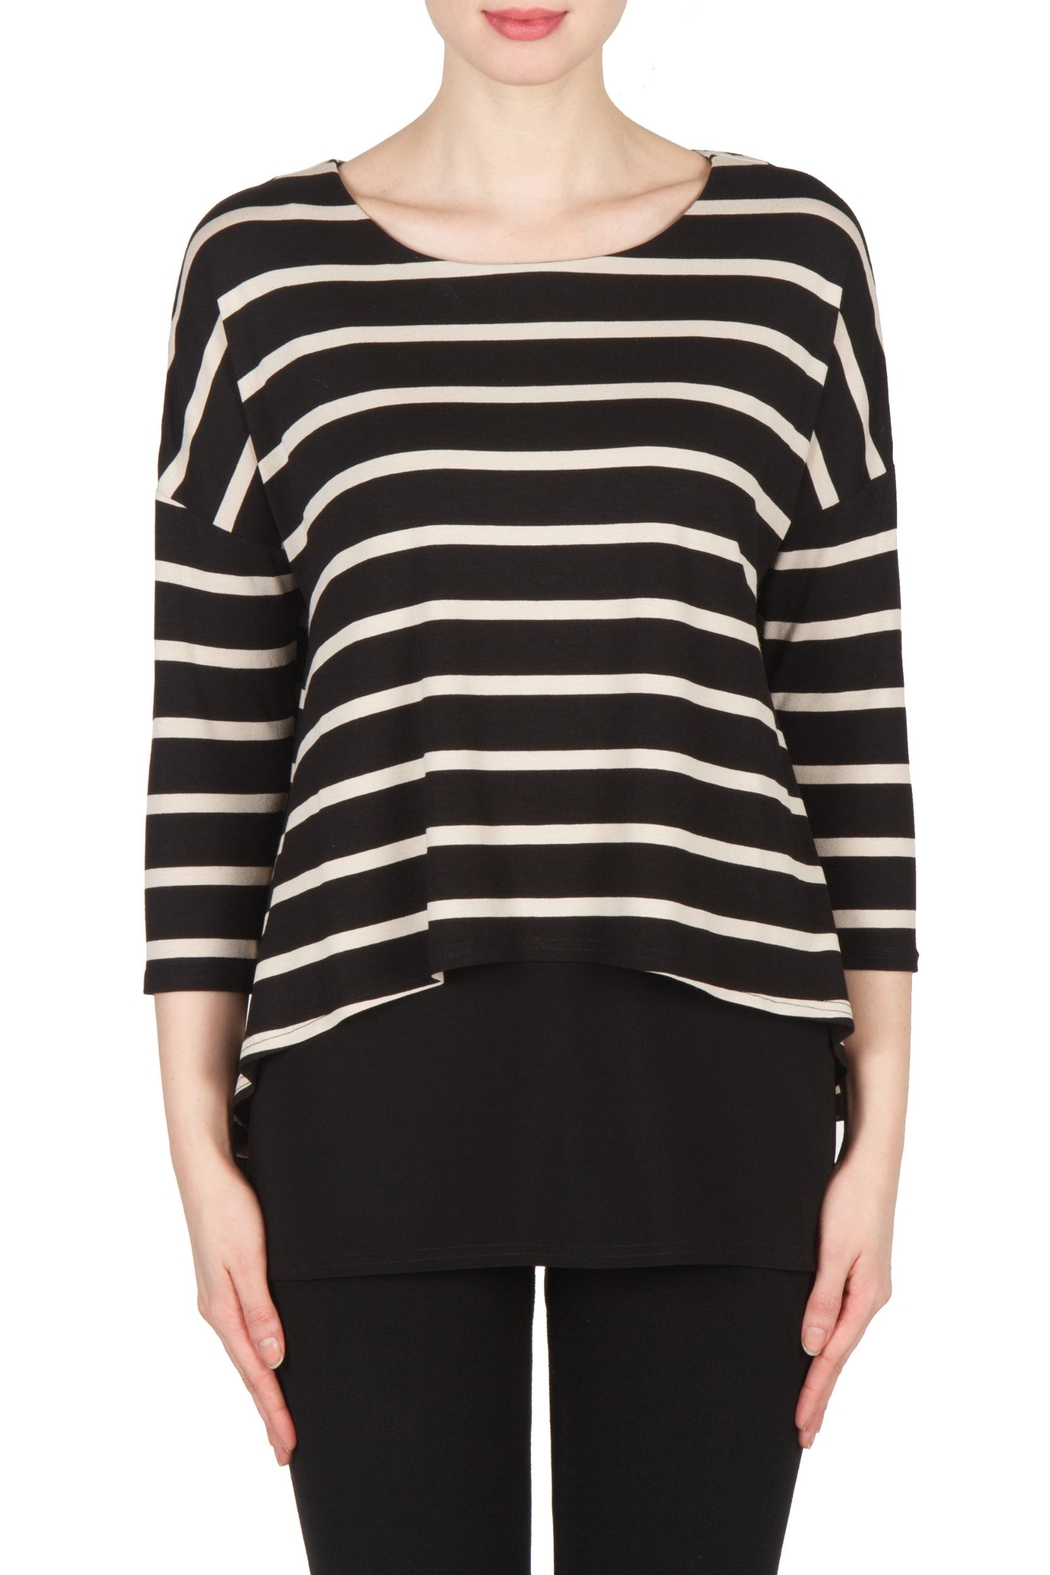 Joseph Ribkoff Striped Tunic Top - Main Image